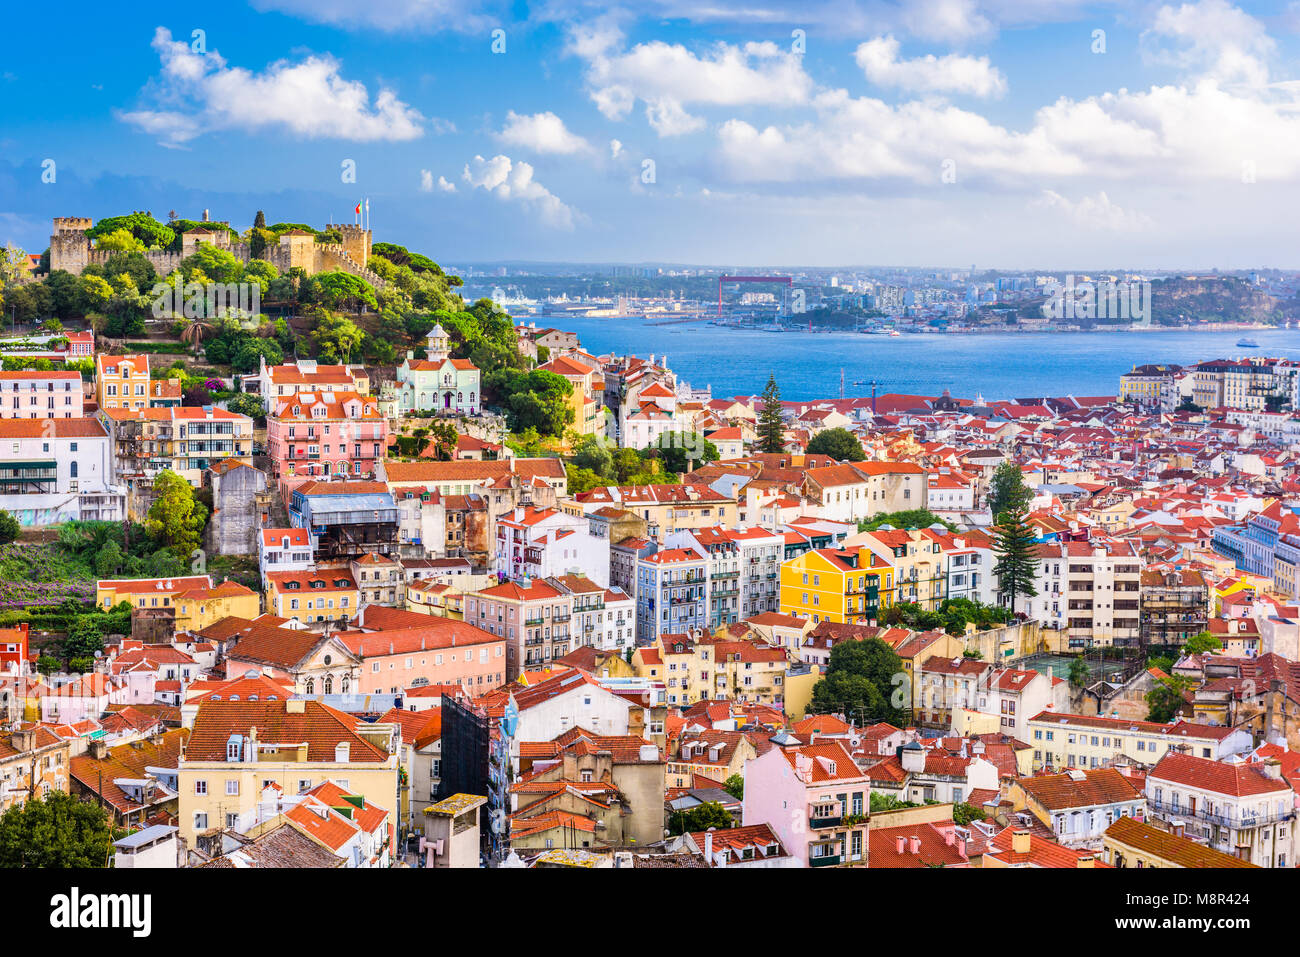 Lisbon, Portugal old town skyline. - Stock Image